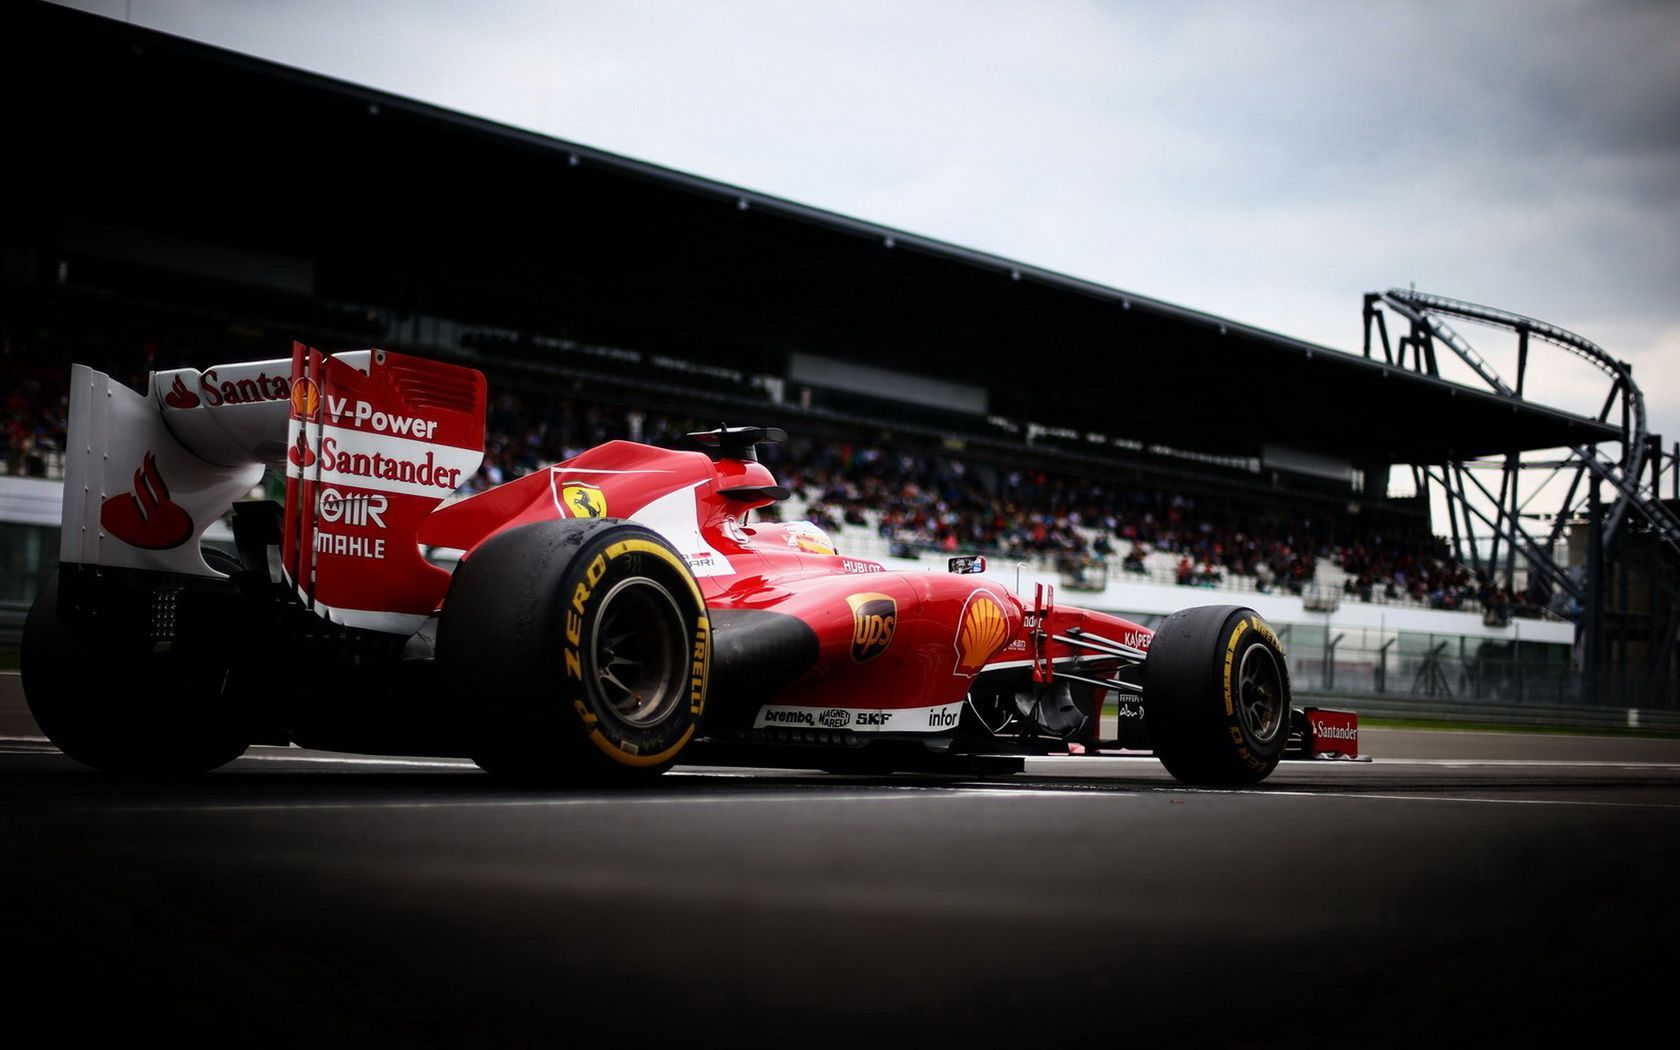 F1 Wallpaper For Mac Bmt Racing Ferrari